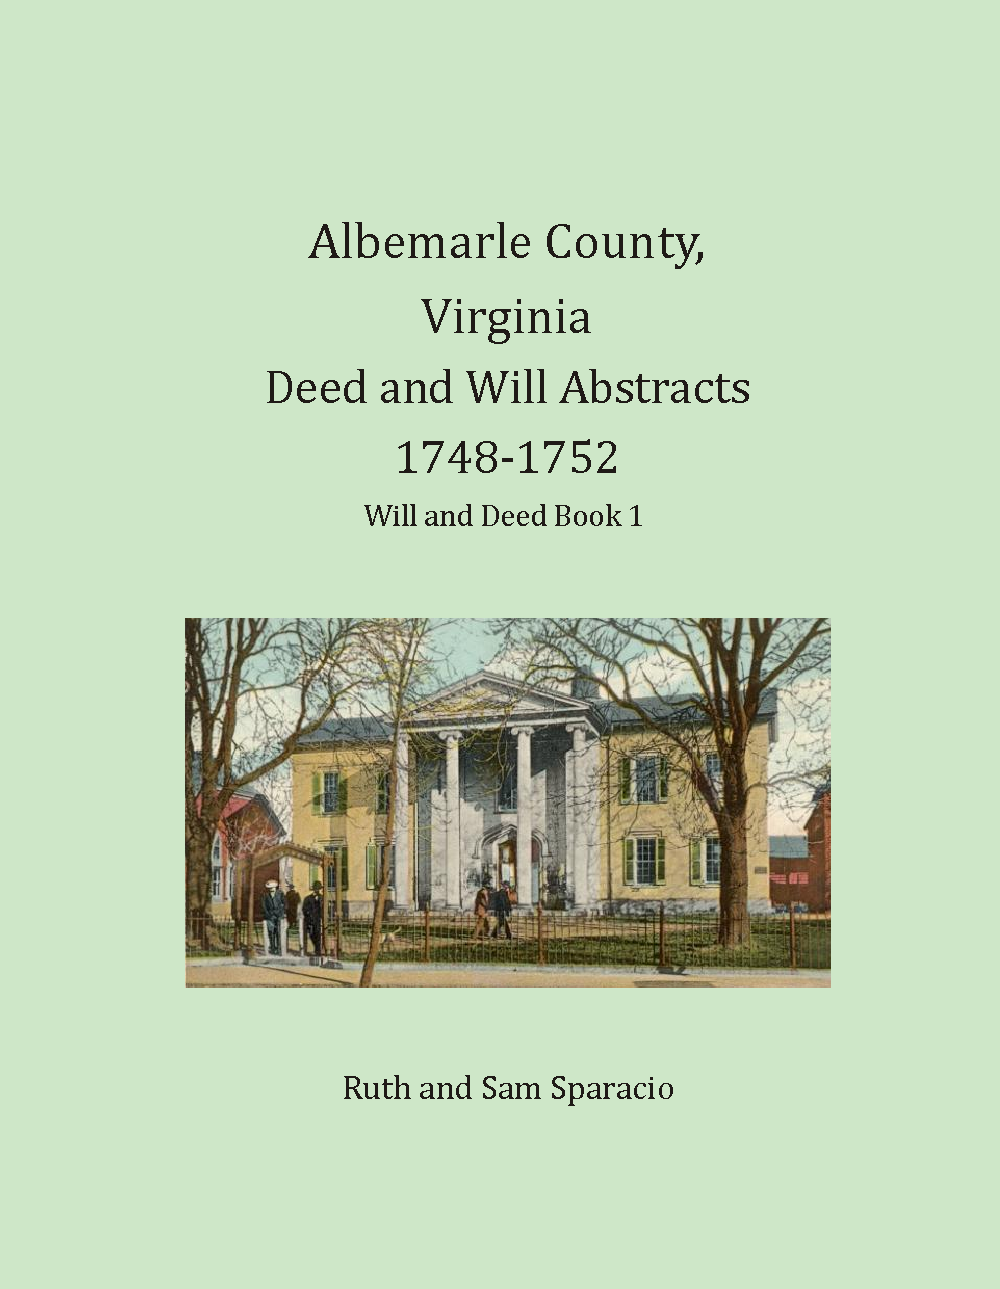 Albemarle County, Virginia Deed and Will Book Abstracts, 1748-1752